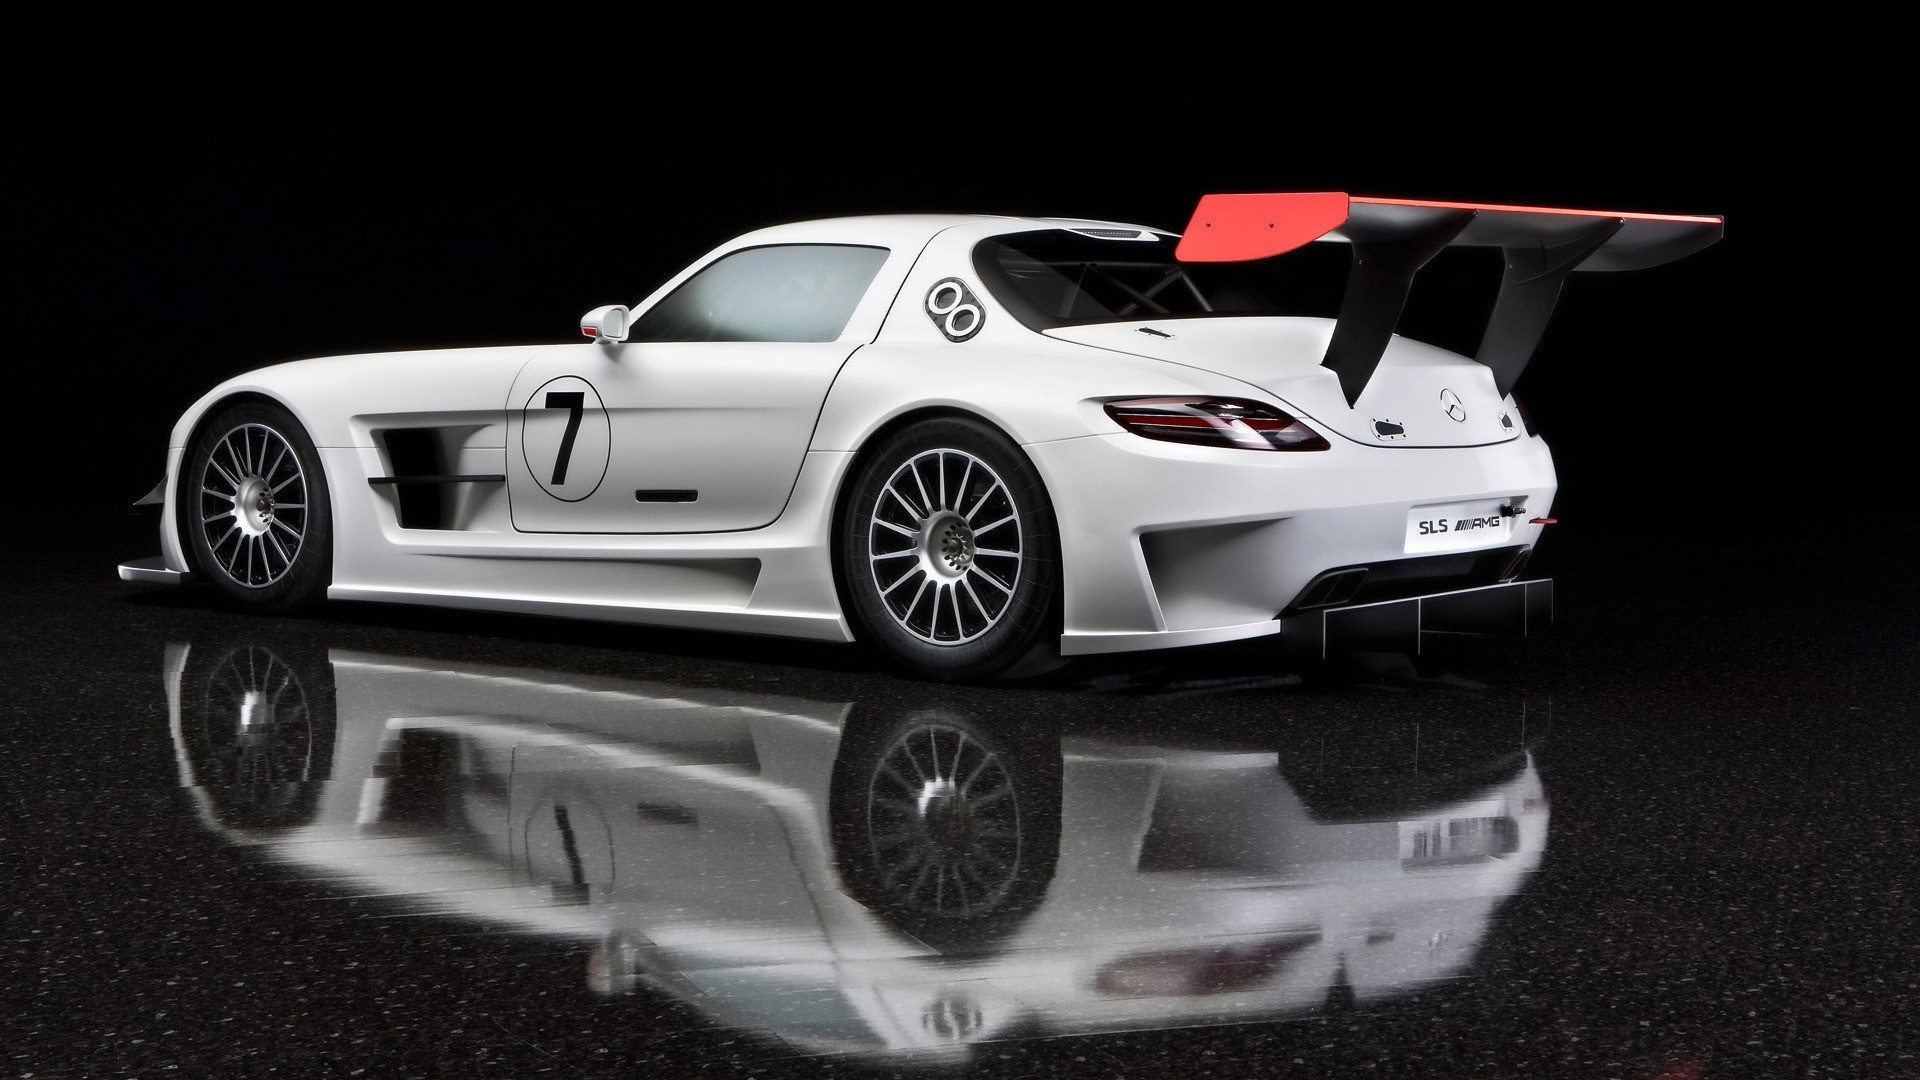 1920x1080 Mercedes Benz SLS AMG GT3 Wallpaper